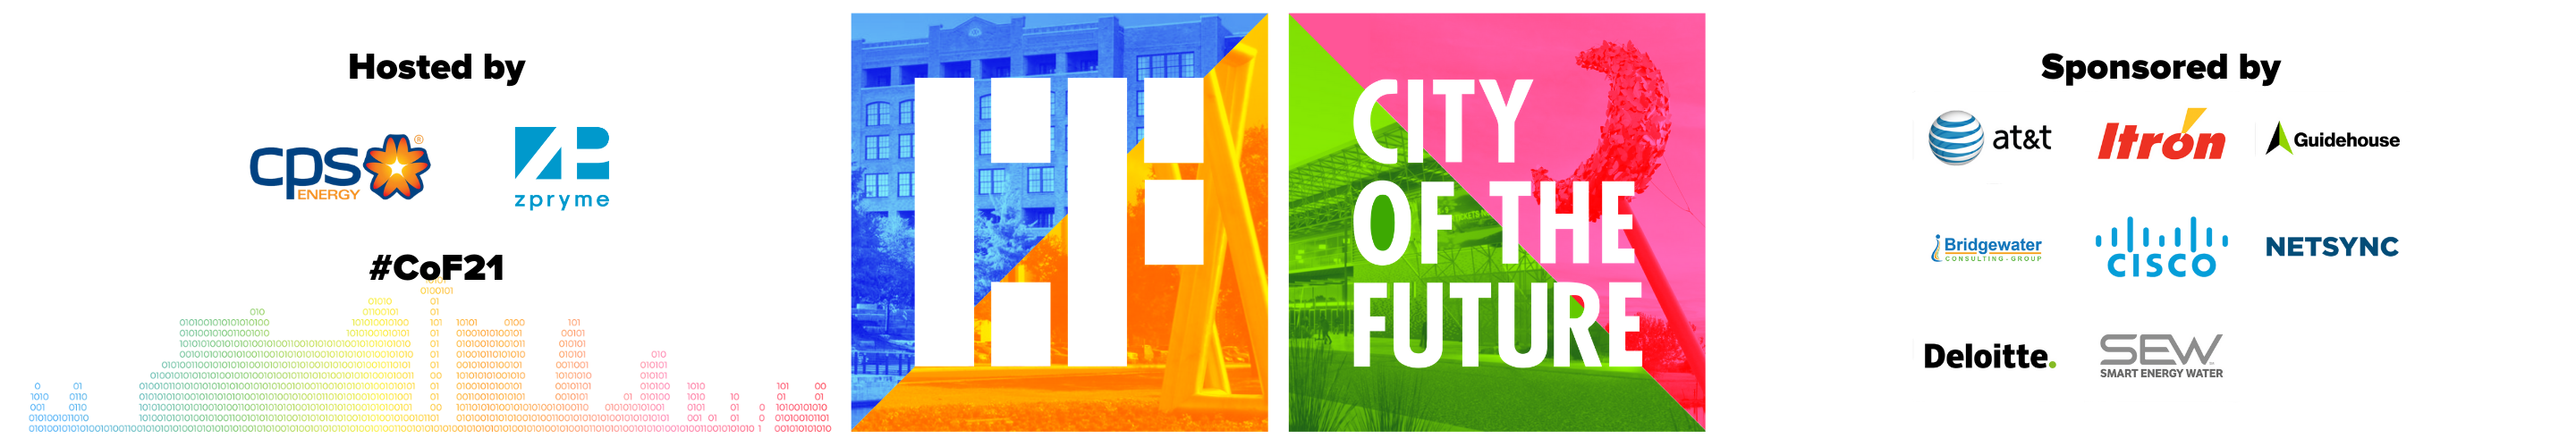 City of the Future - September Session